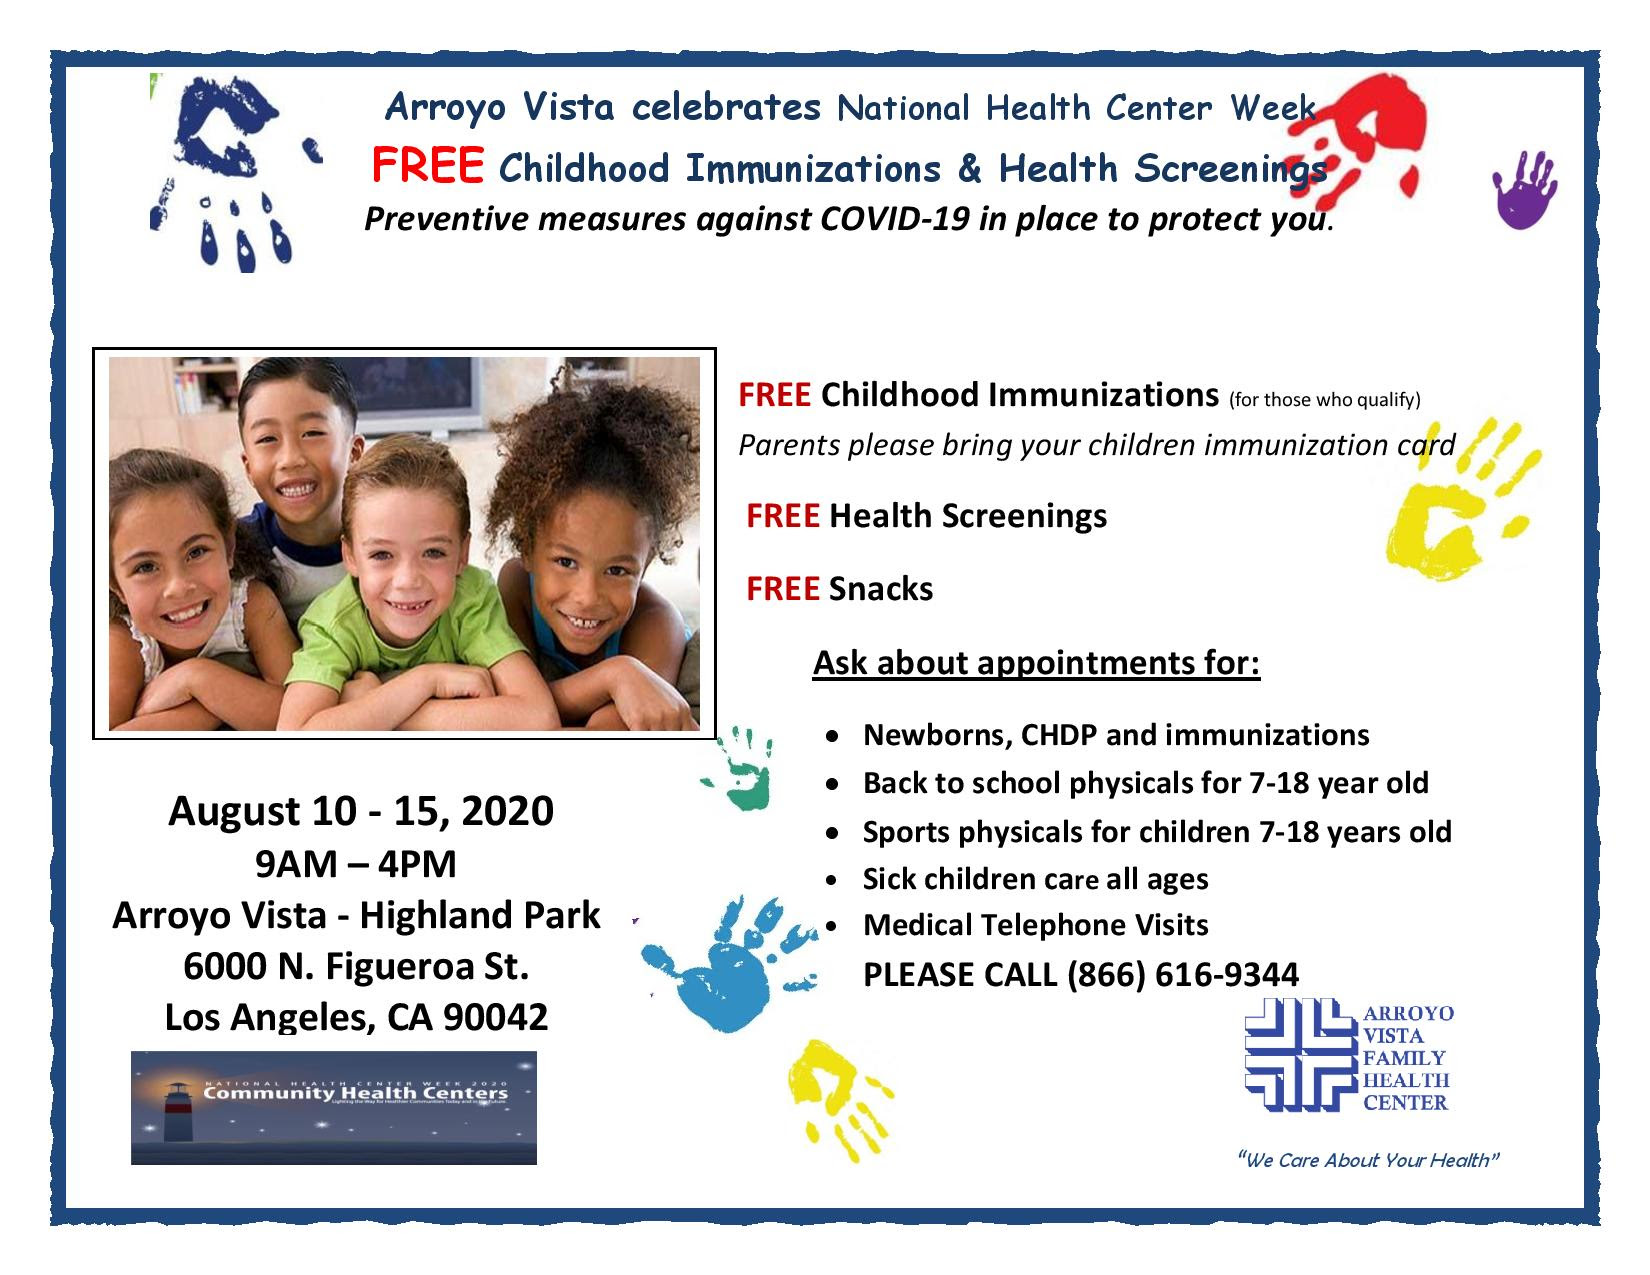 Arroyo Vista Family Health Center Celebrates National Health Center Week 8-10 to 15 ENGLISH